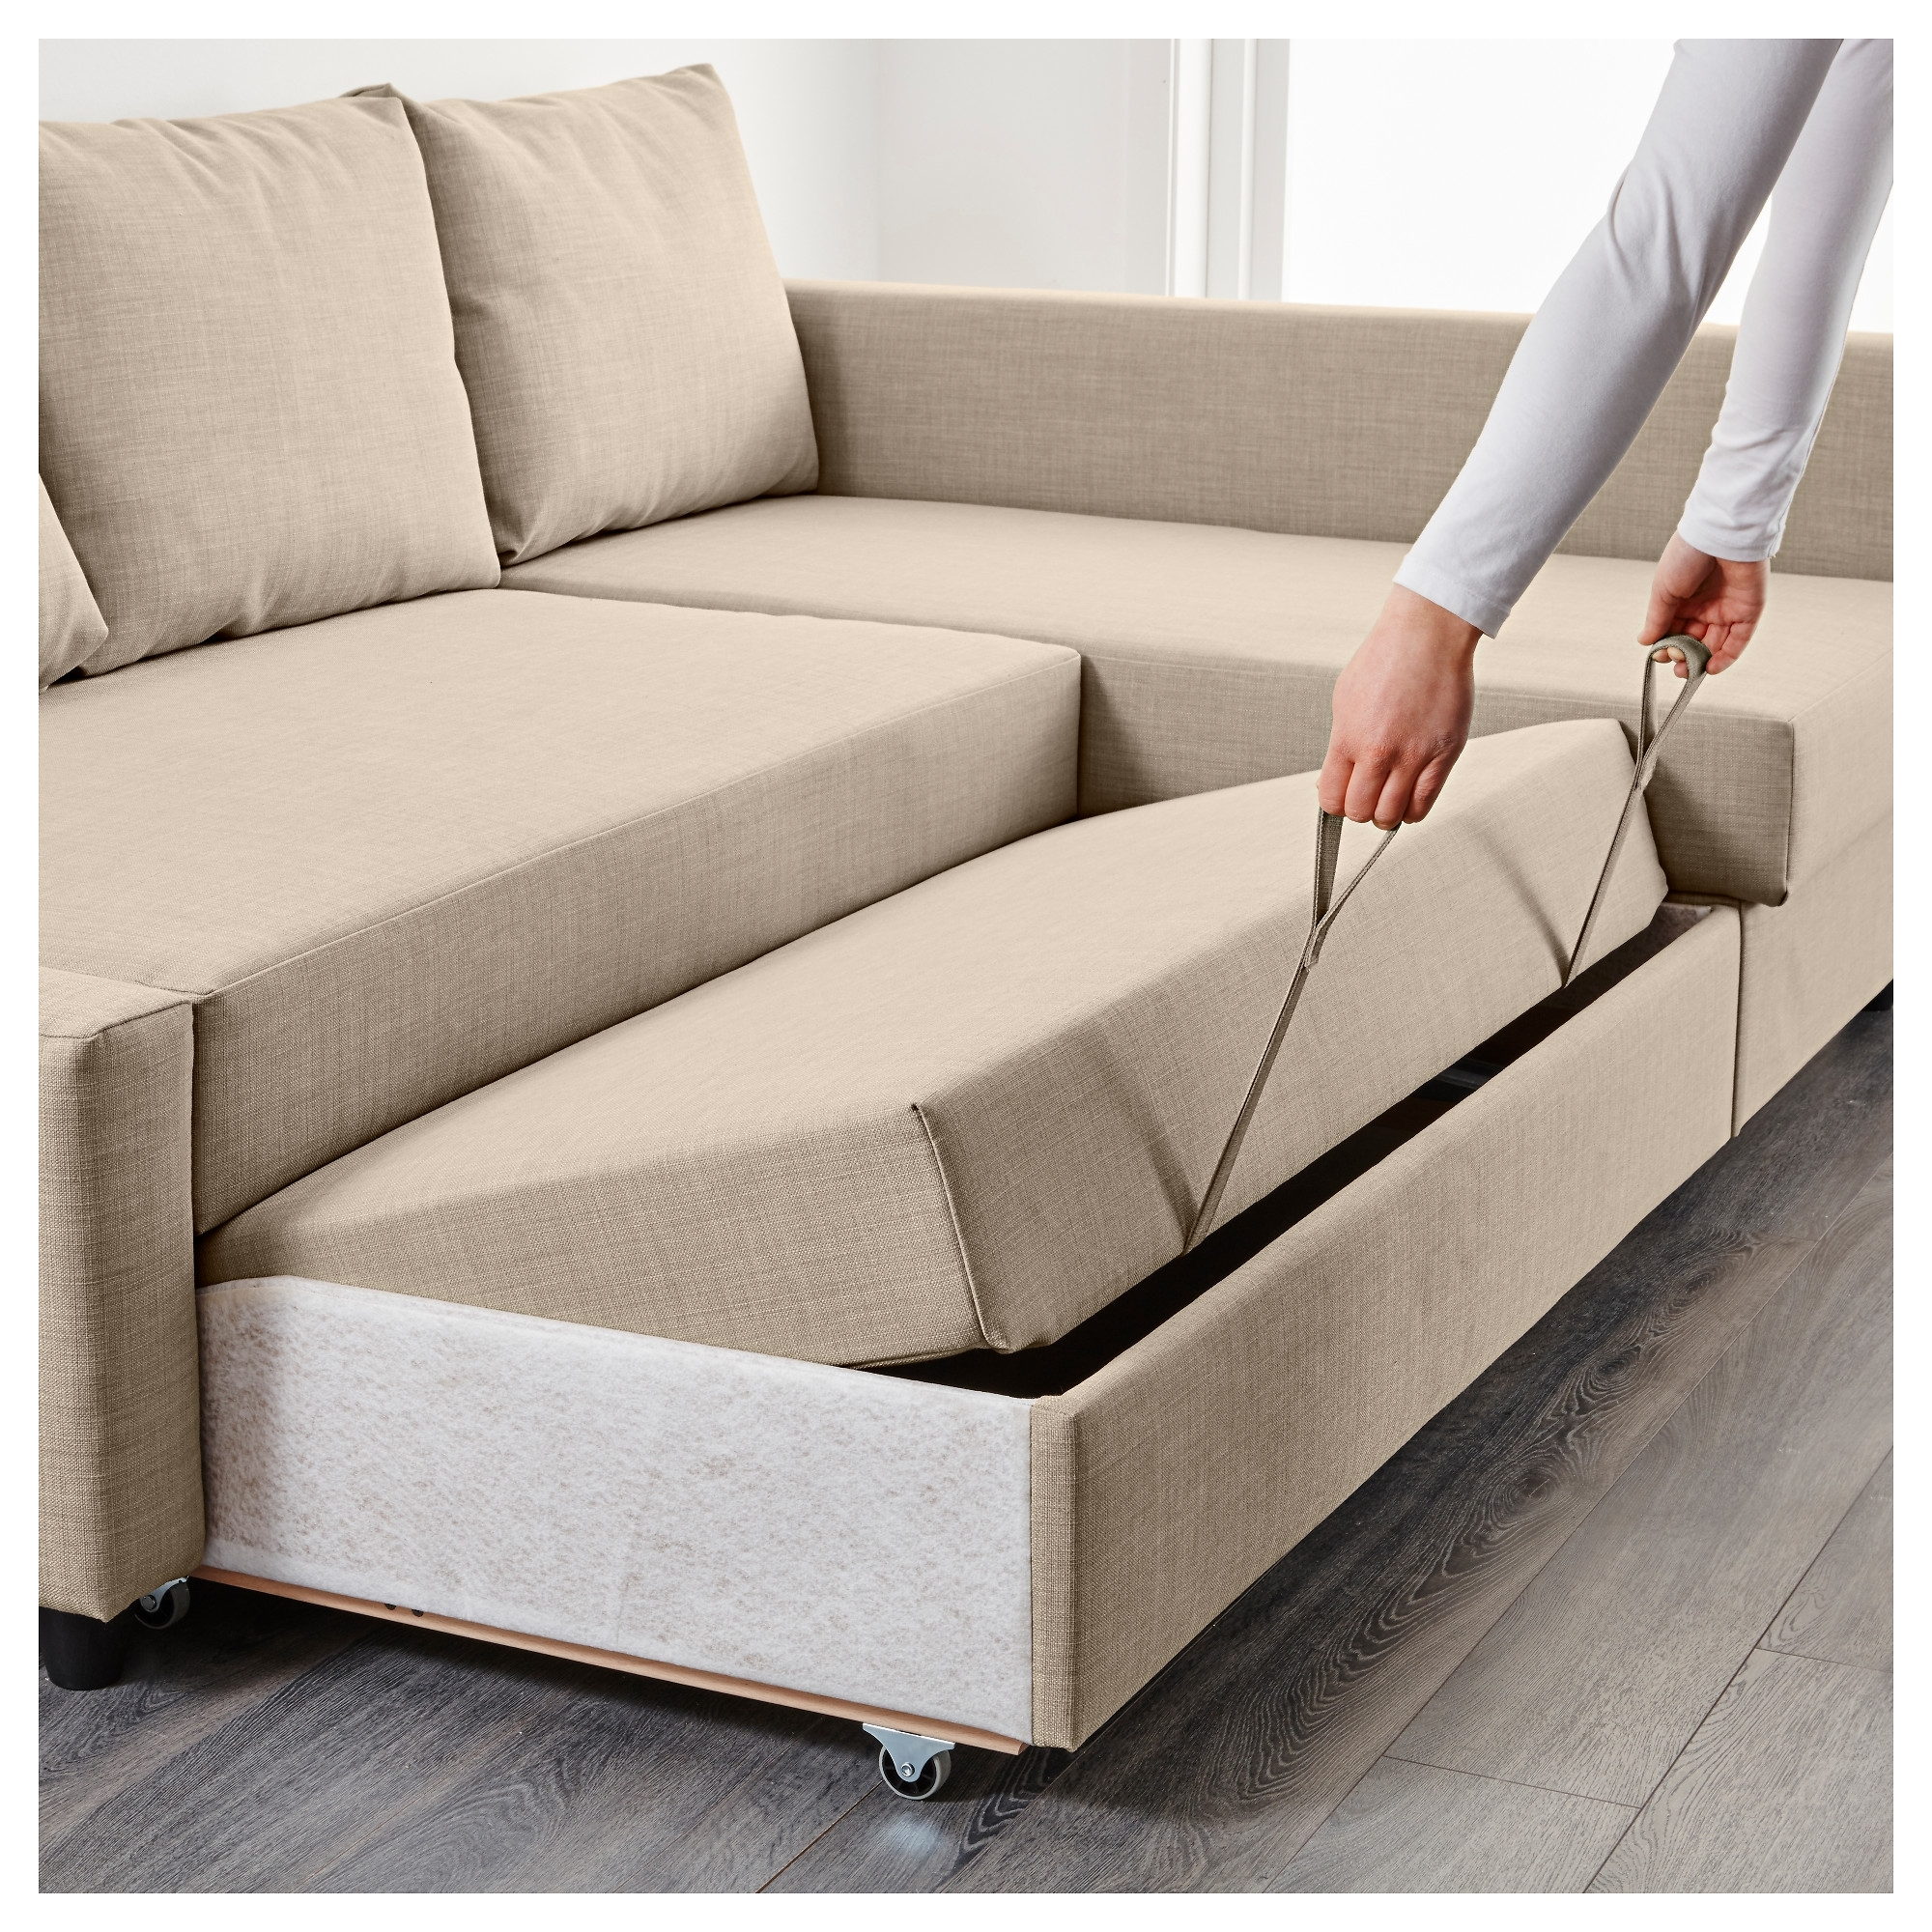 Most Up To Date Ikea Corner Sofas With Storage Pertaining To Friheten Corner Sofa Bed With Storage Skiftebo Beige – Ikea (View 3 of 20)